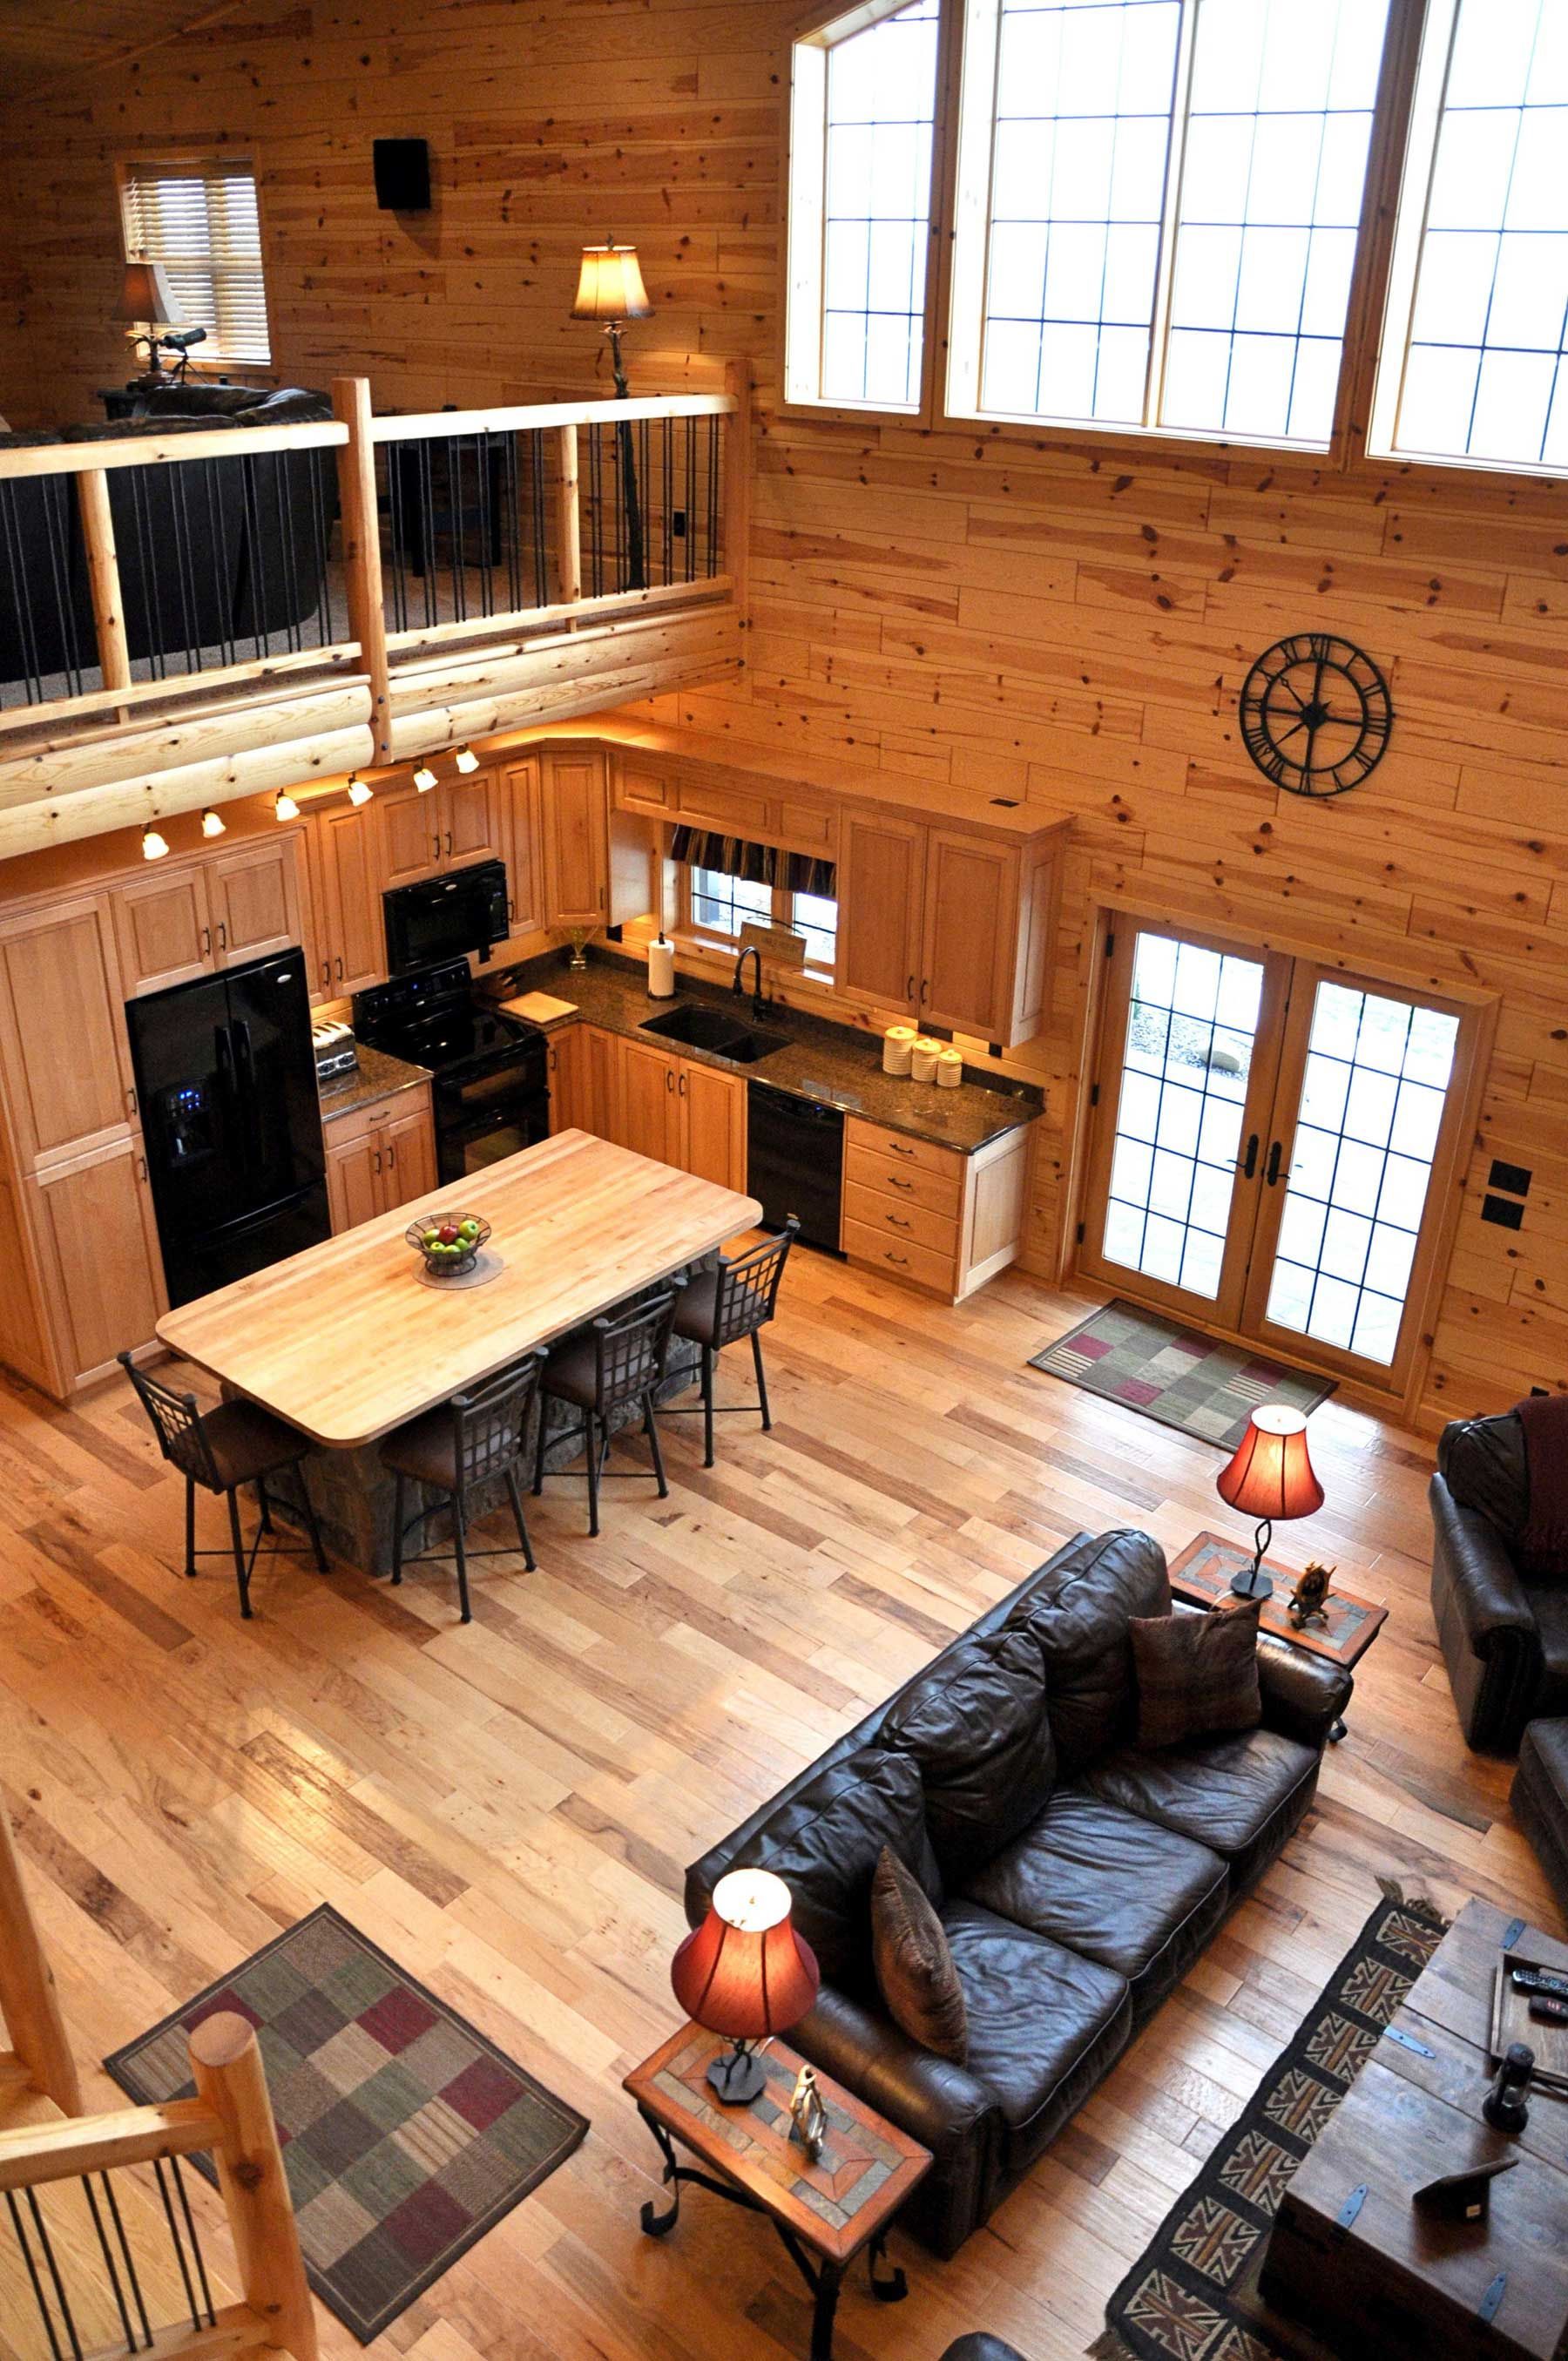 Wood Paneled Room Design: Log Home & Cabin Pictures